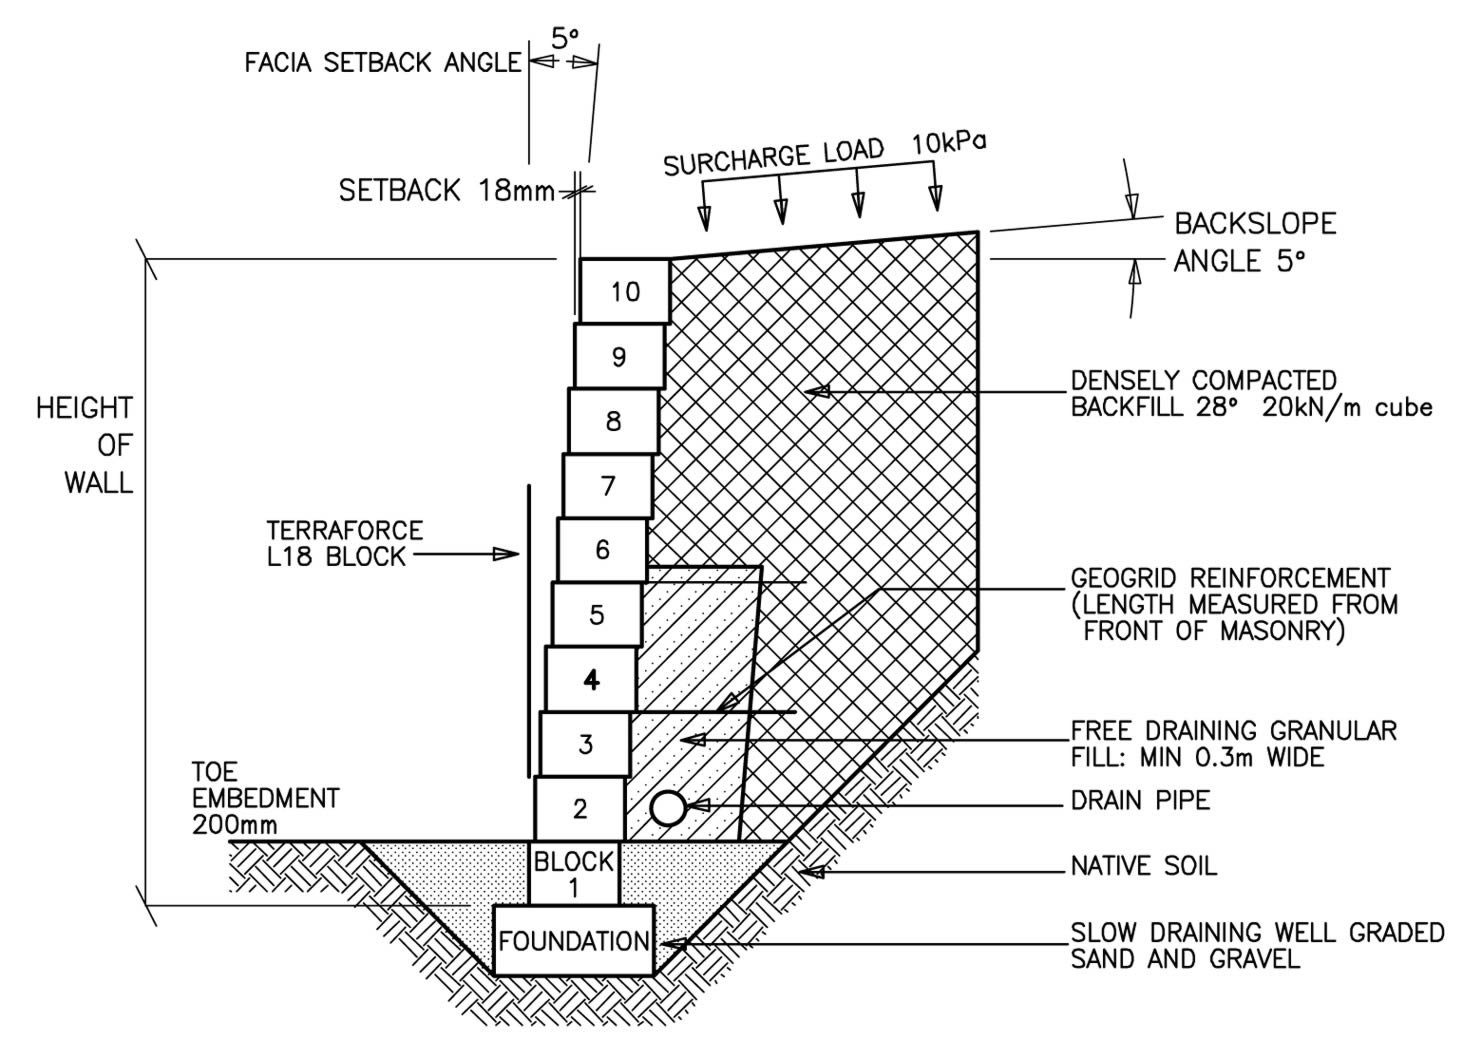 the maximum wall heights for a single skin mass gravity block retaining wall system with additional geogrid reinforcement